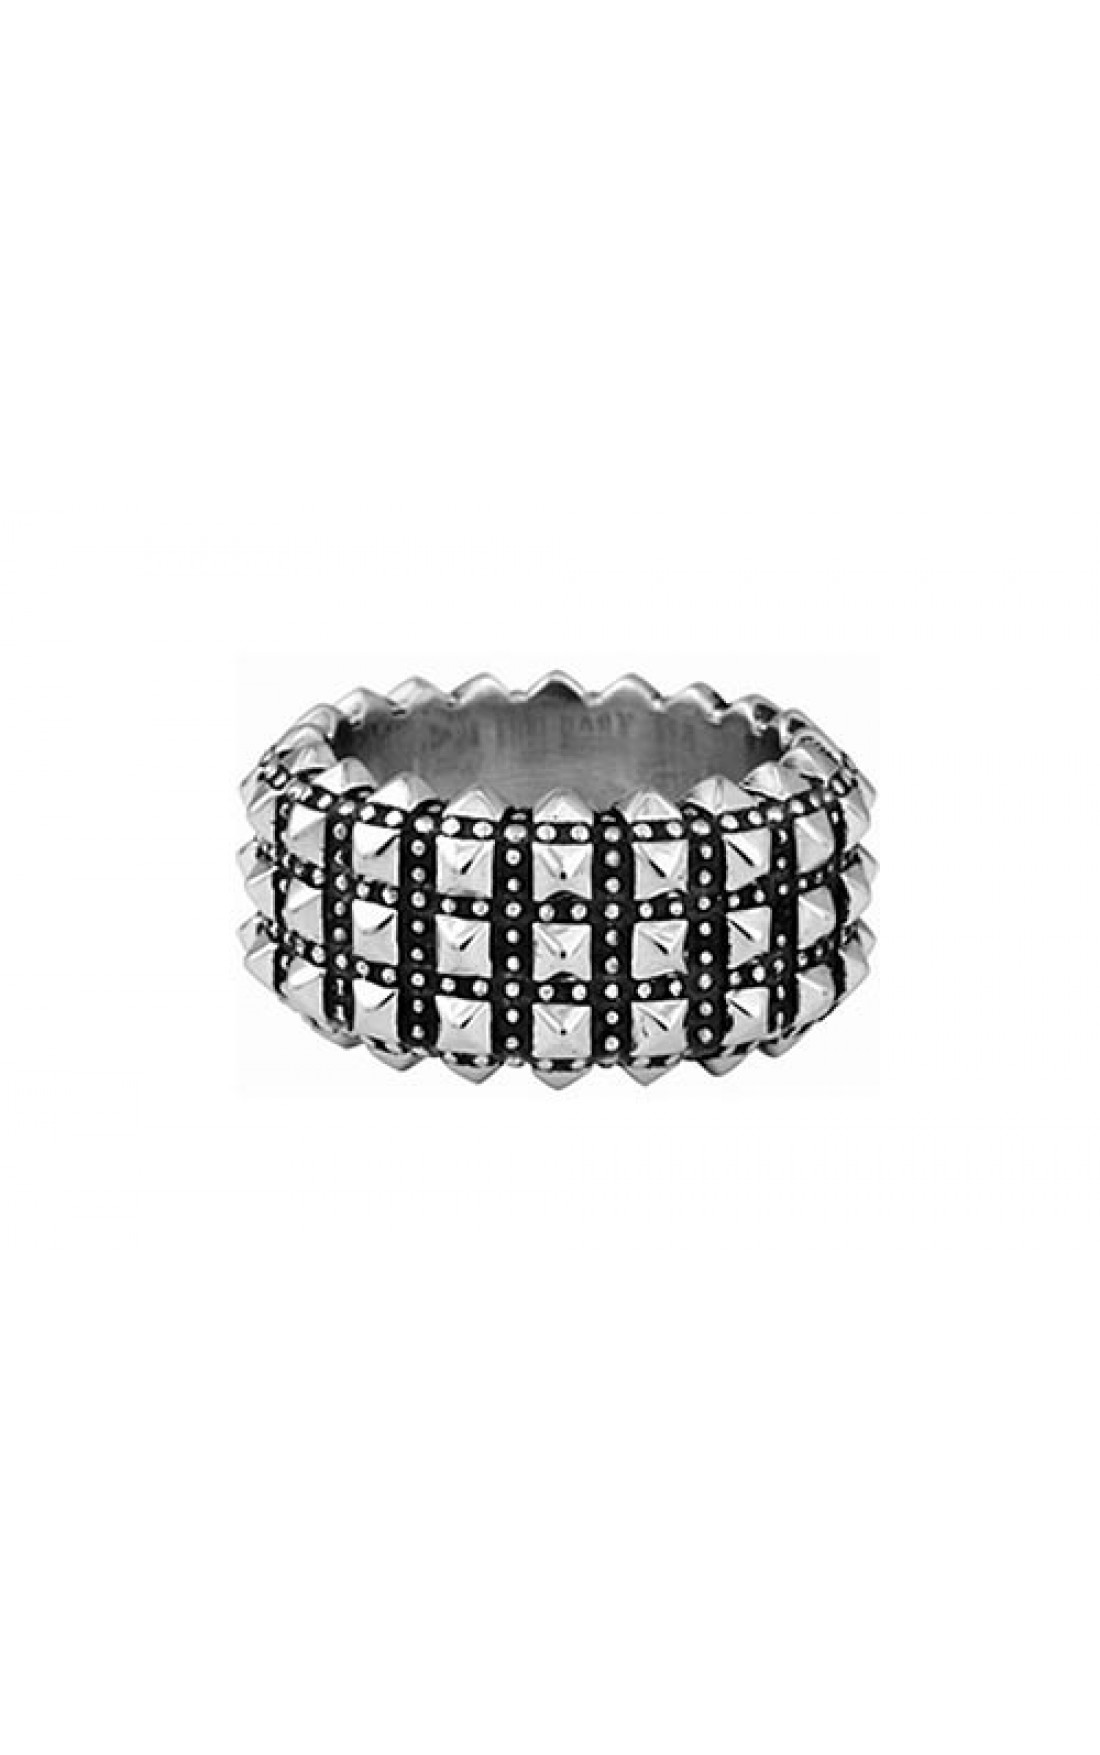 King Baby Jewellery - Wide Pyramid Studded Ring (K20-5167)